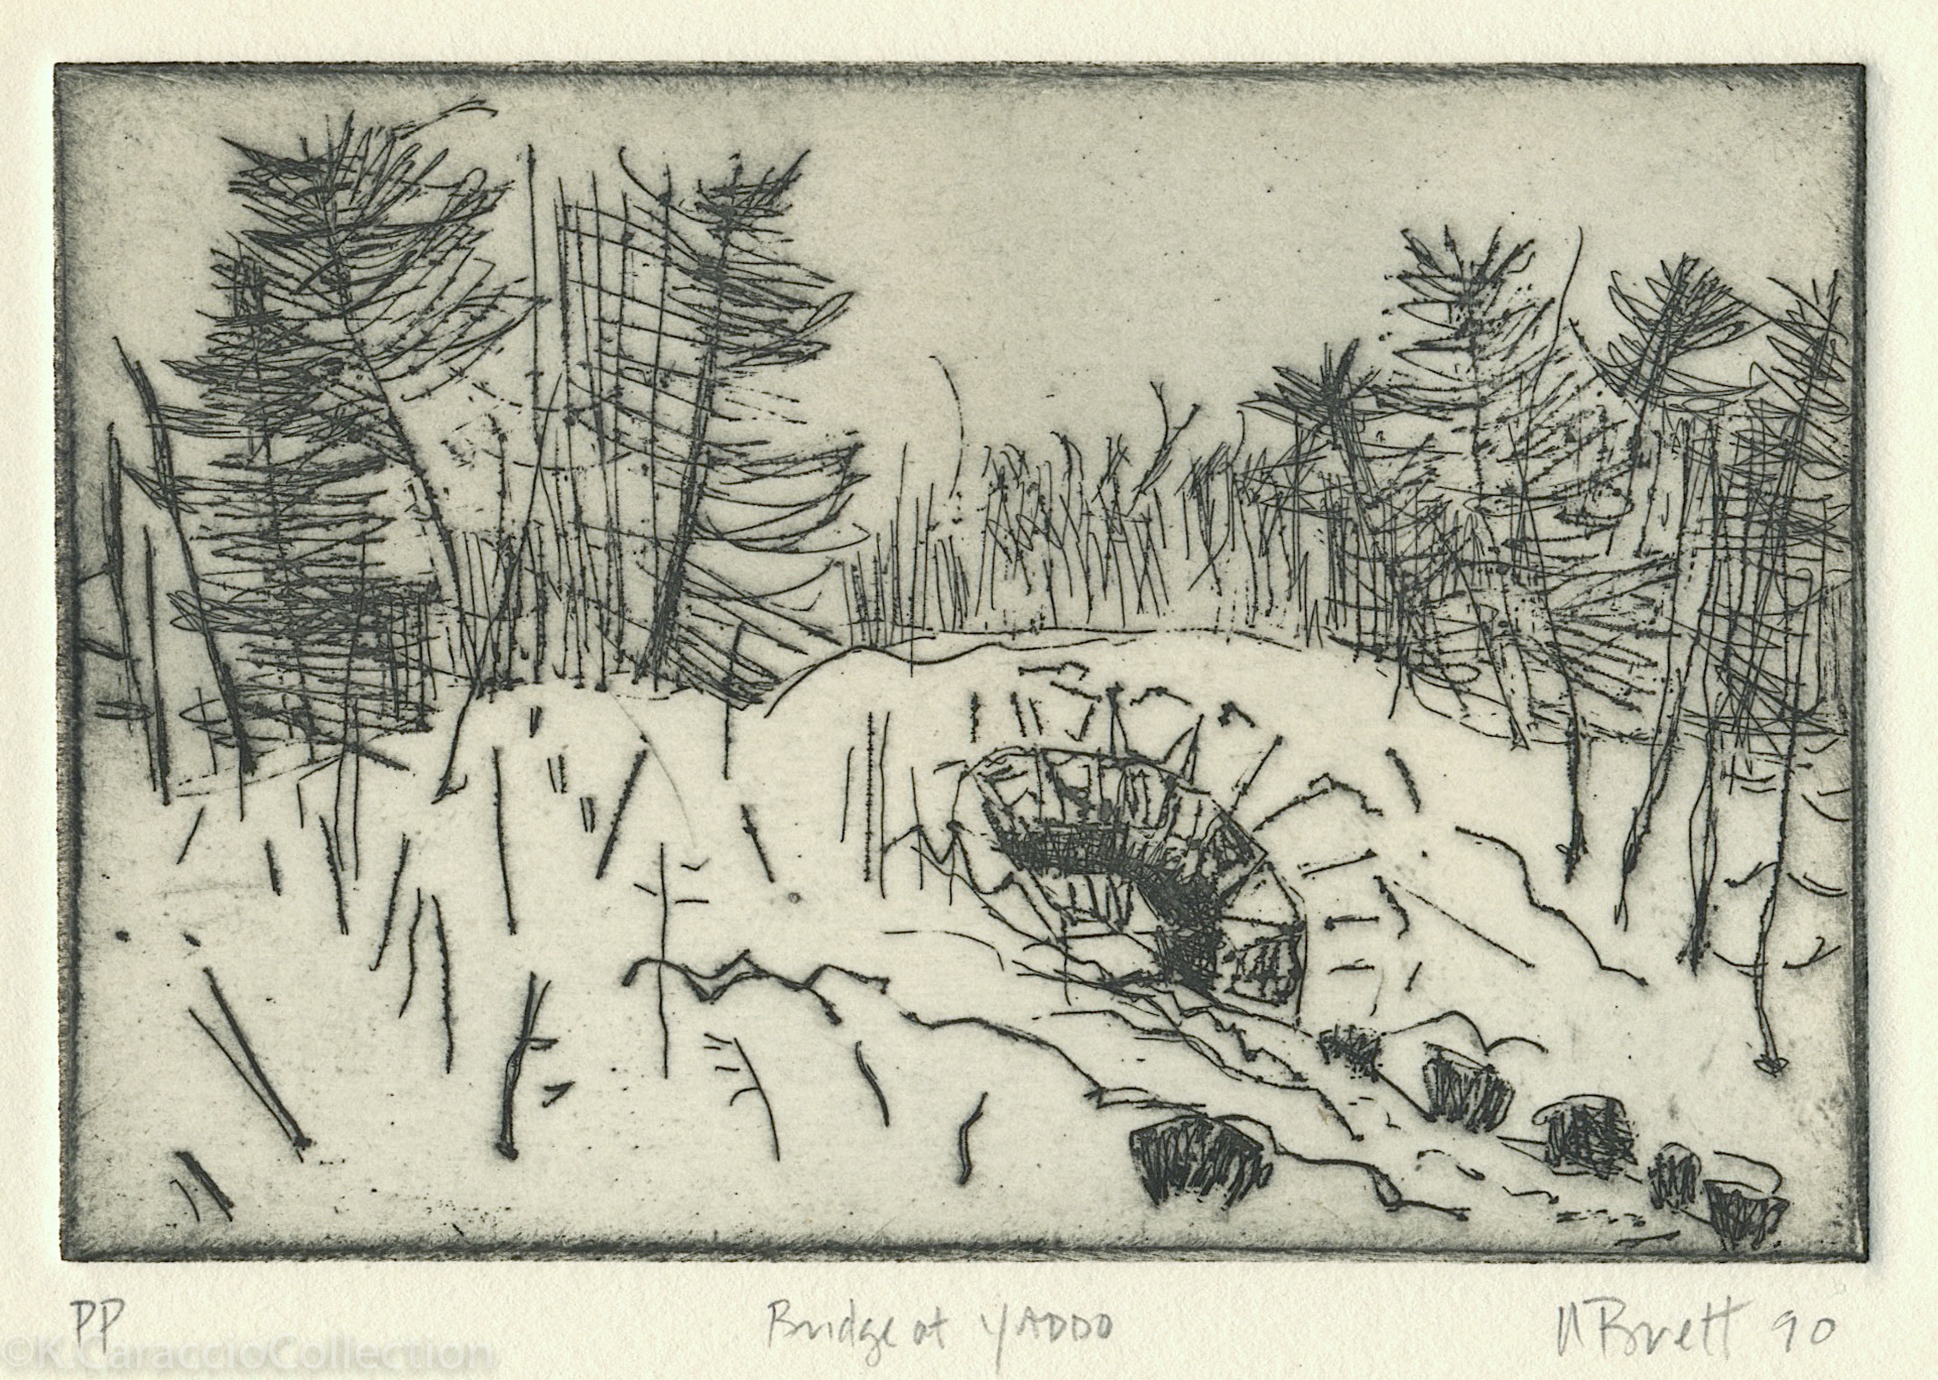 Bridge at Yaddo, 1990